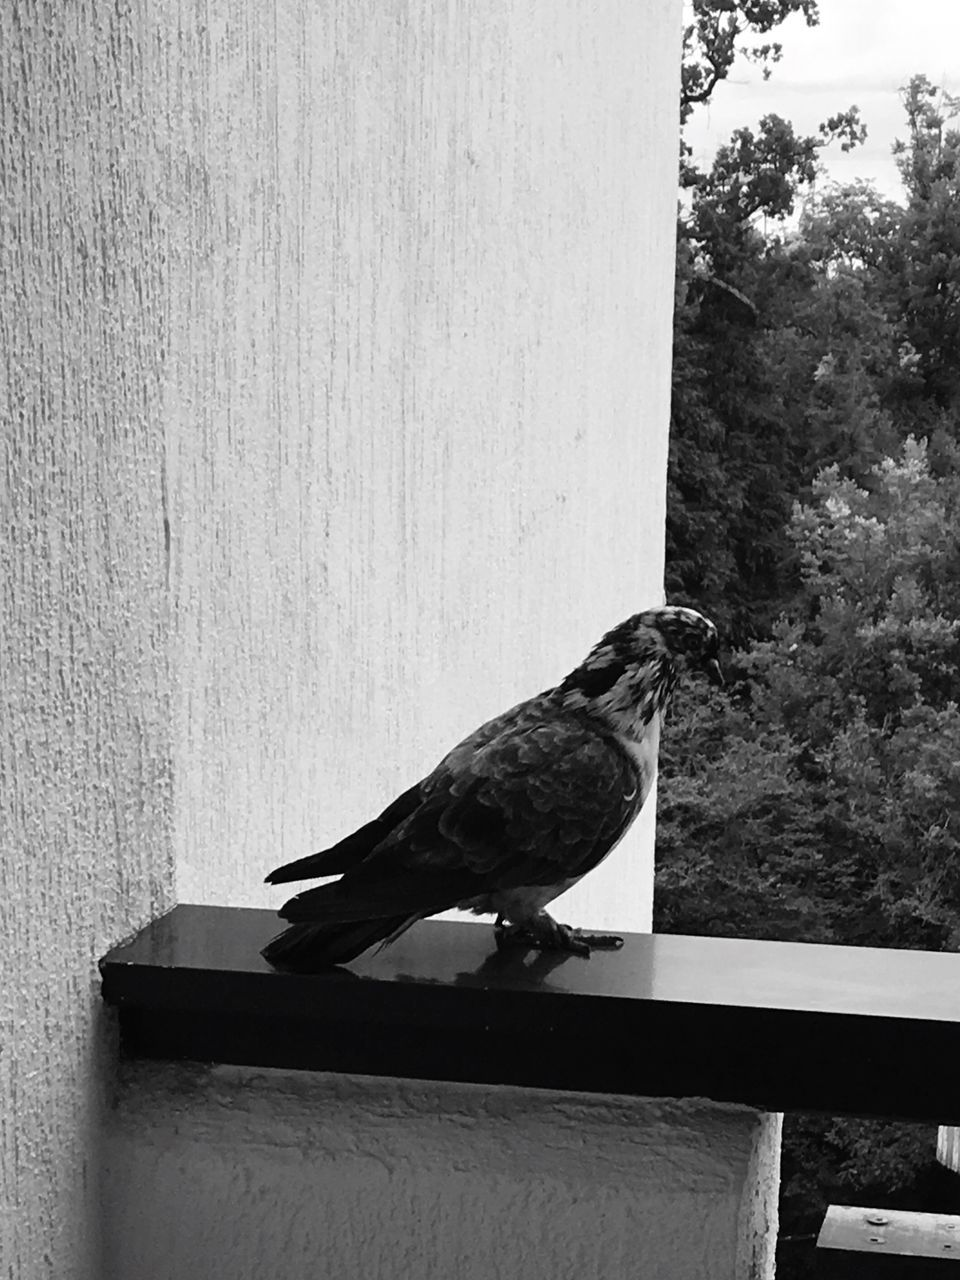 bird, animal themes, animals in the wild, one animal, perching, no people, day, animal wildlife, outdoors, built structure, nature, retaining wall, close-up